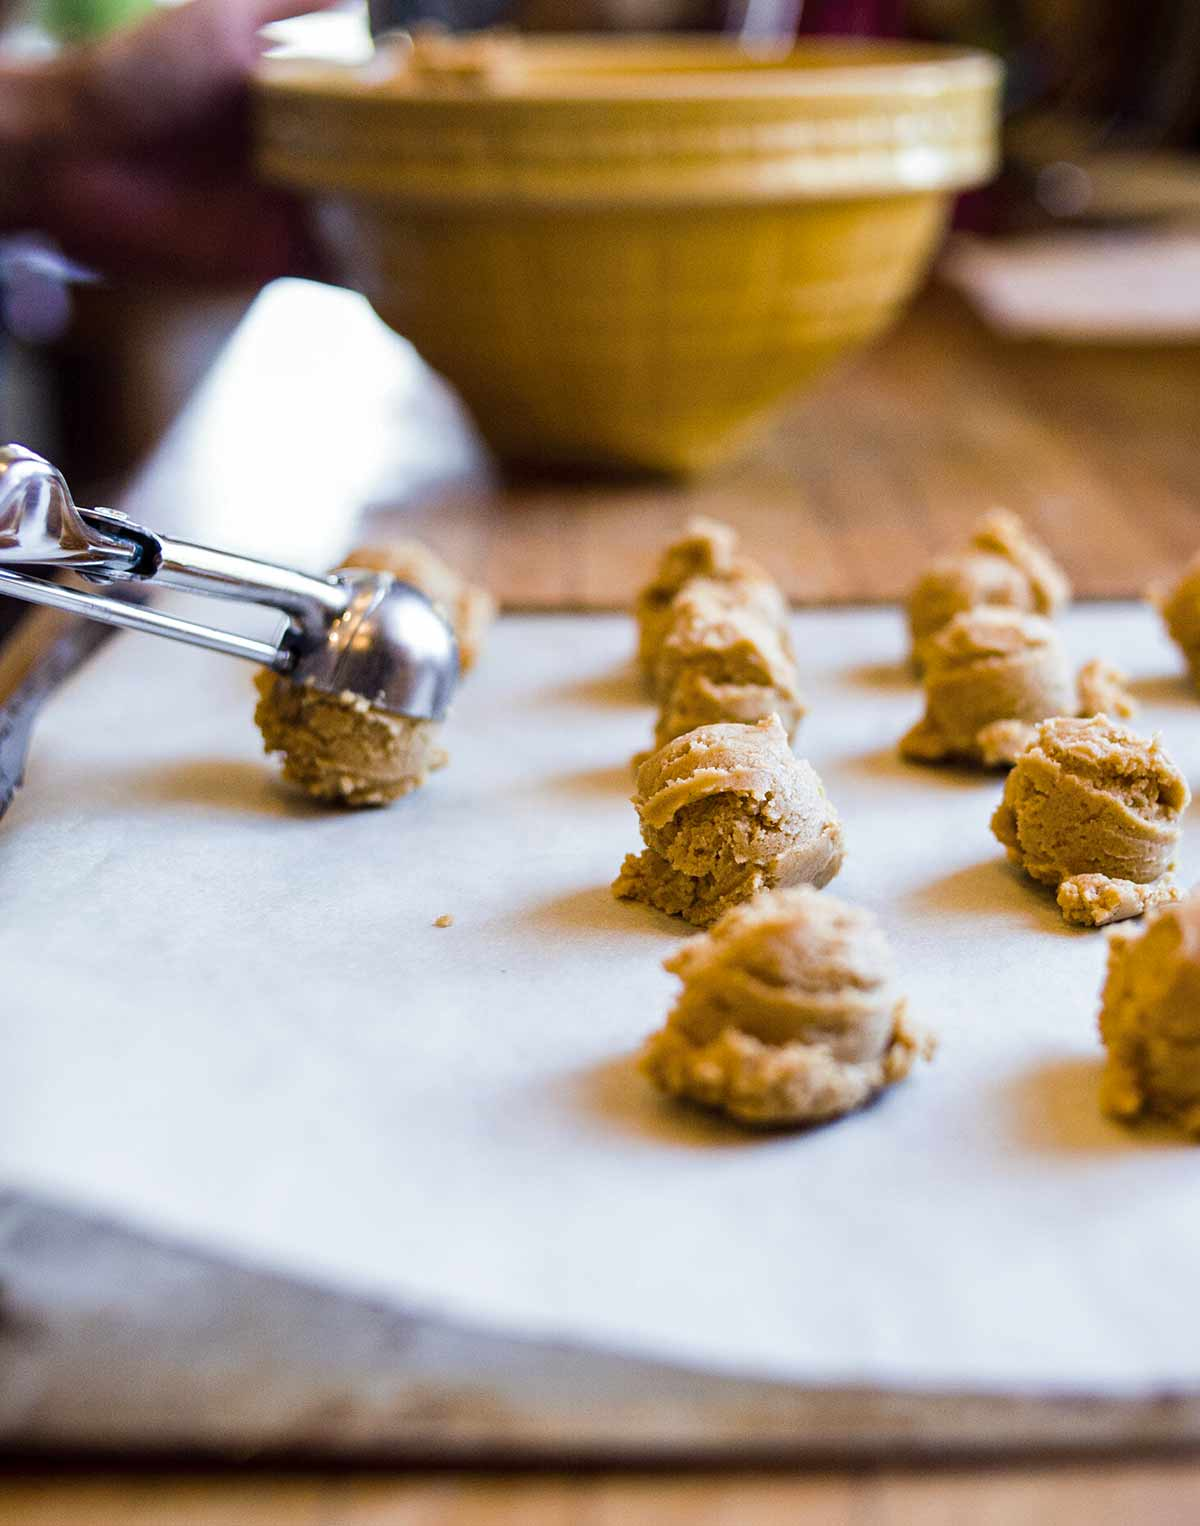 Rows of peanut butter sandies dough balls with a cookie scoop placing another dough ball on the surface.